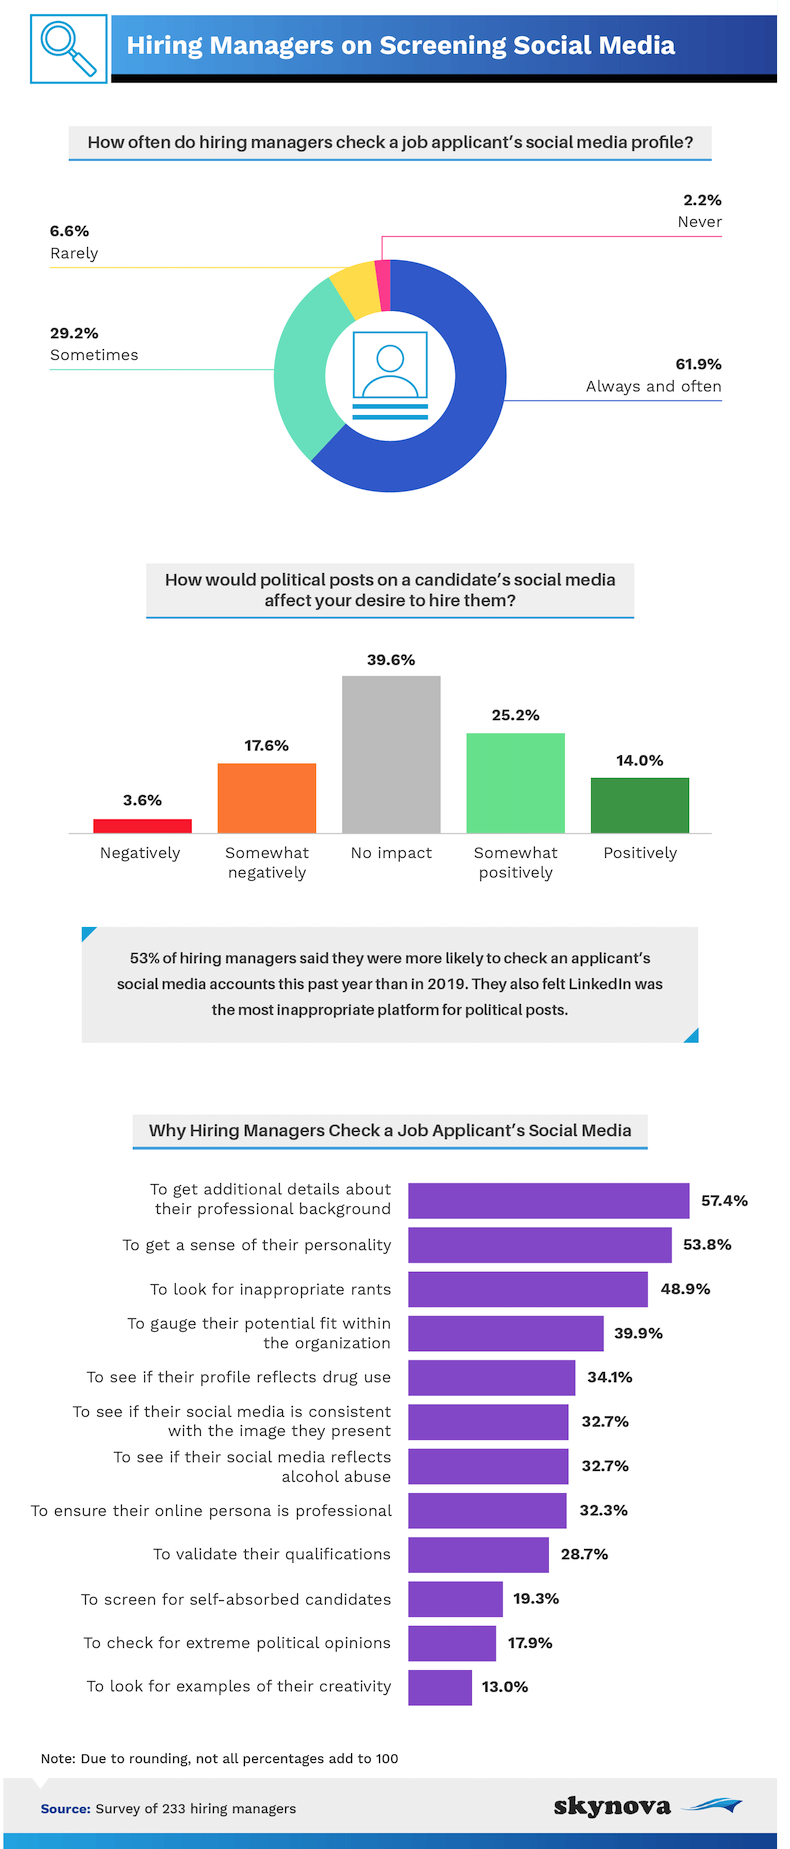 Hiring managers on screening social media infographic